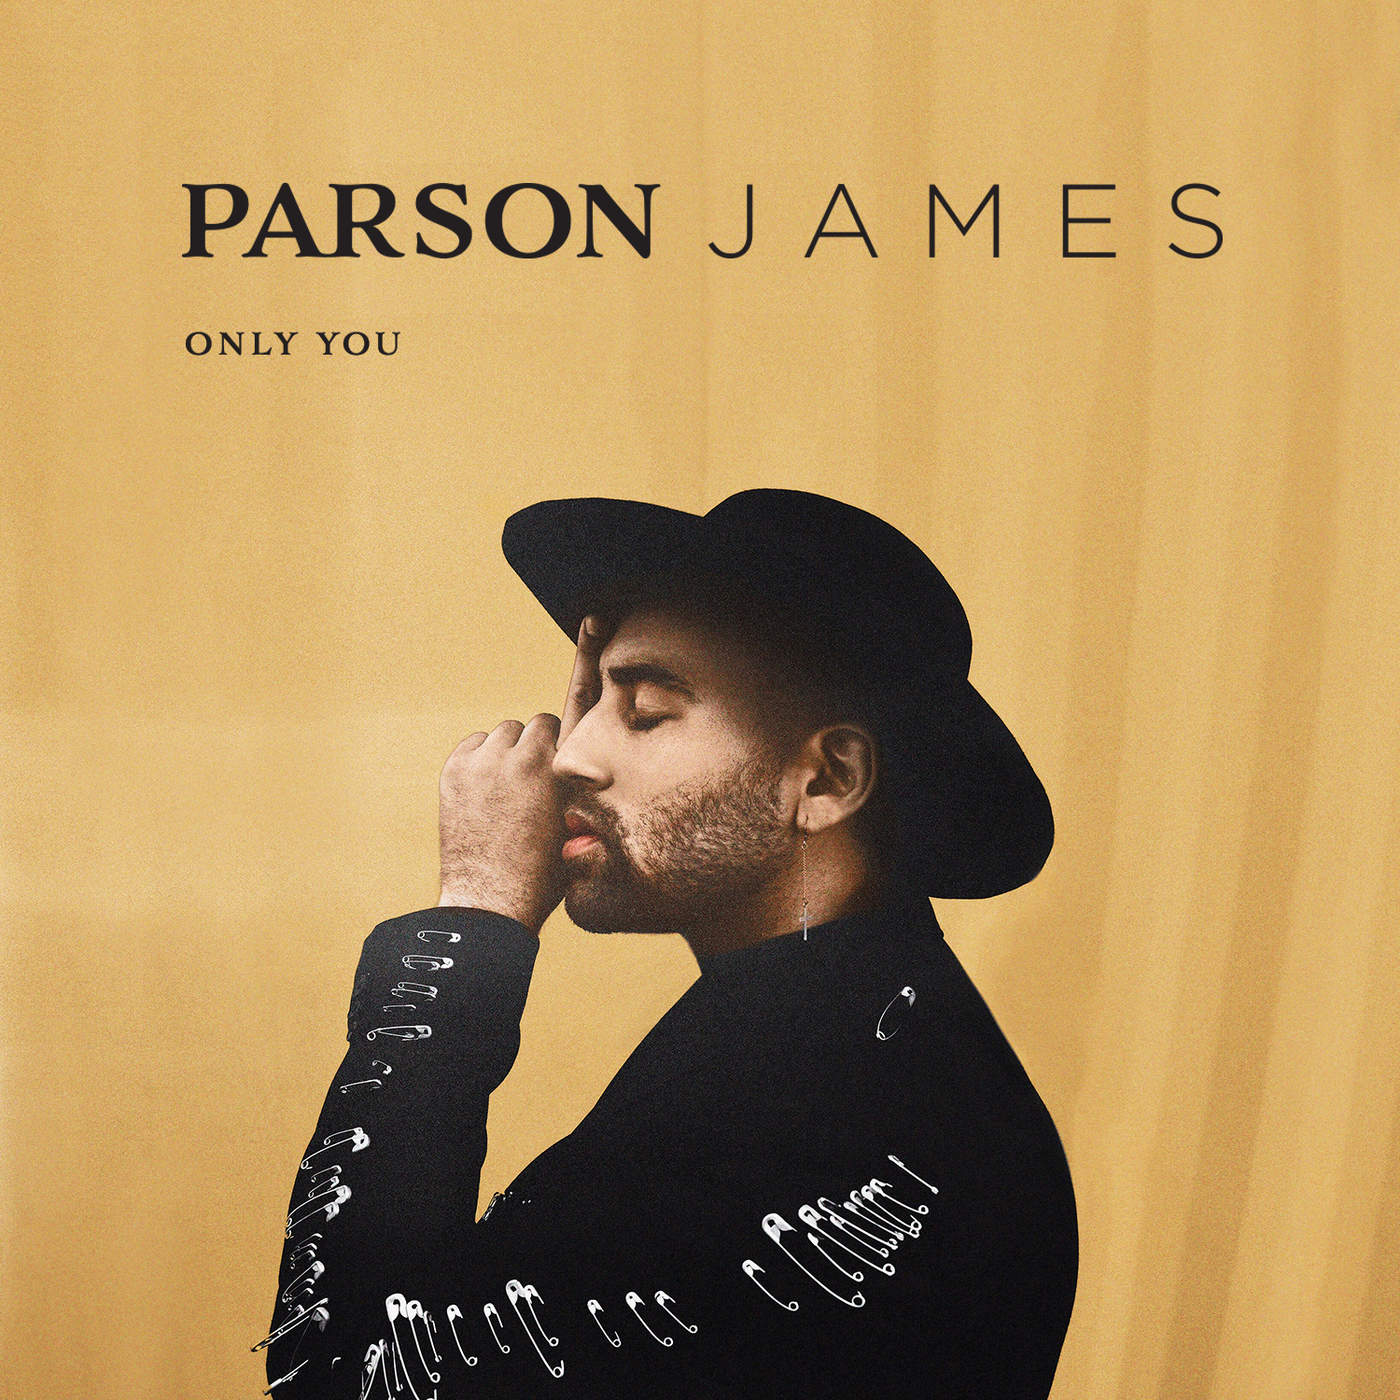 Parson James - Only You - Single